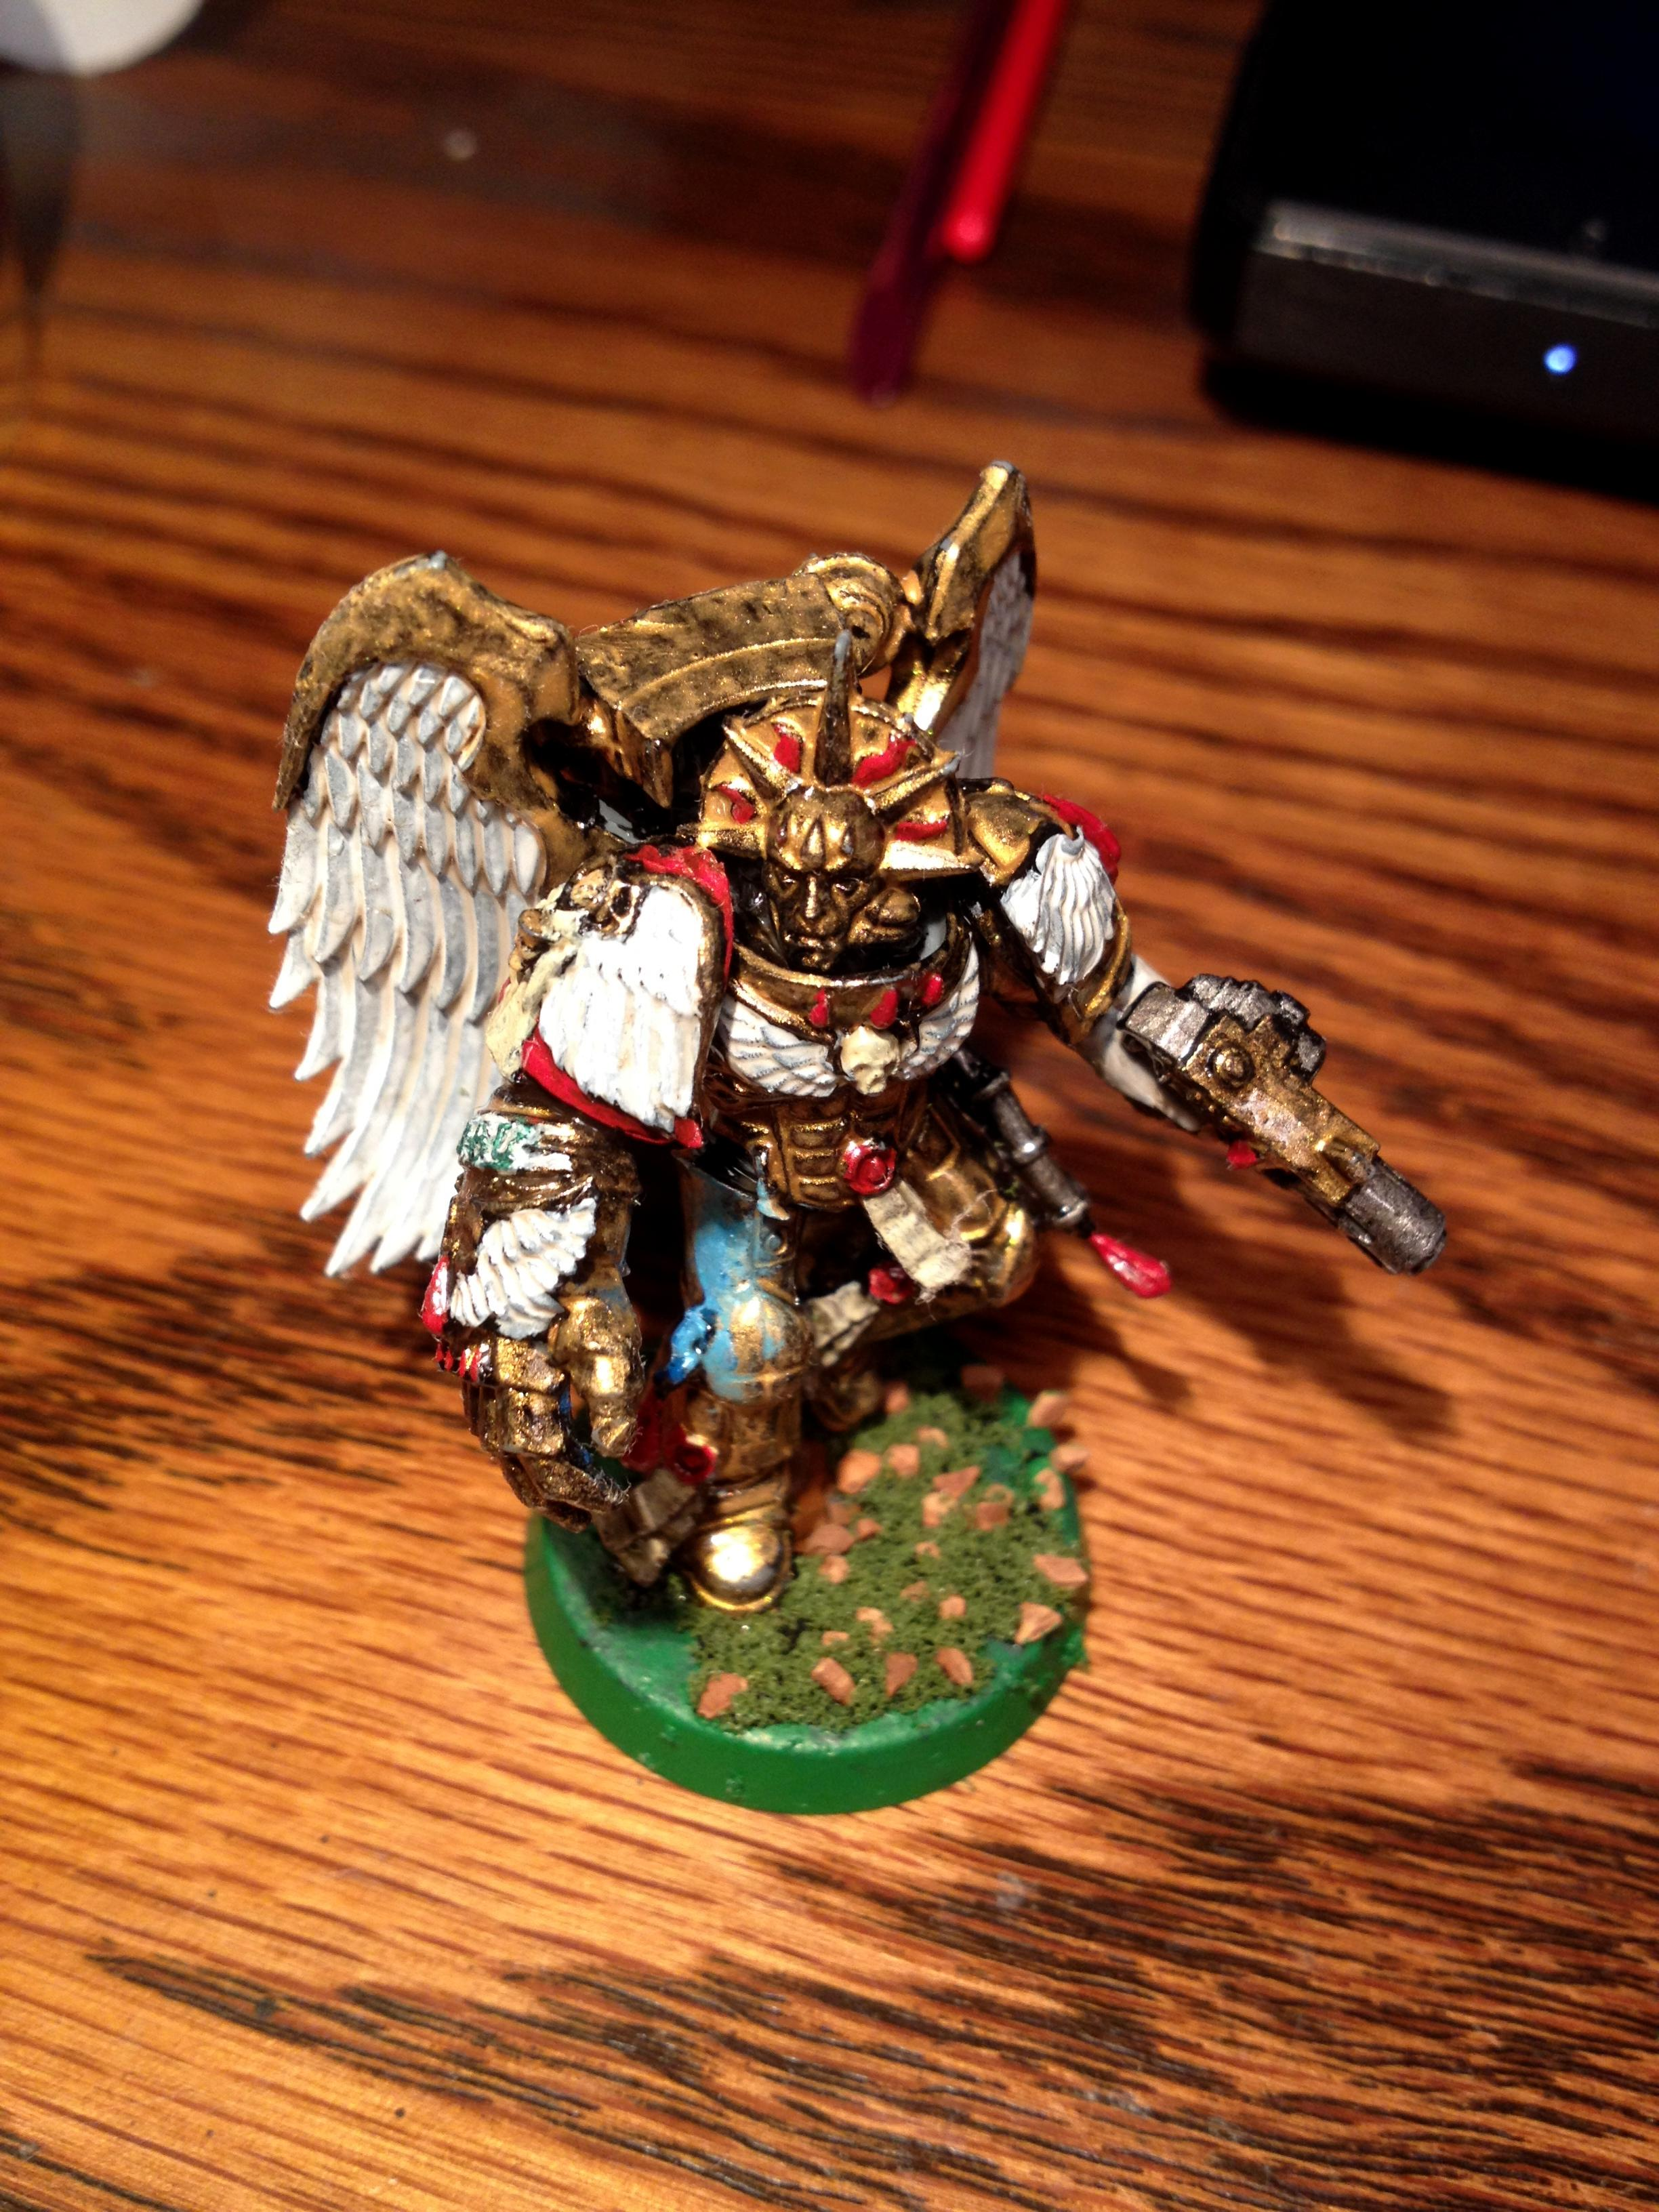 Blood Angels, Death Mask, Object Source Lighting, Power Fist, Sanguinary Angels